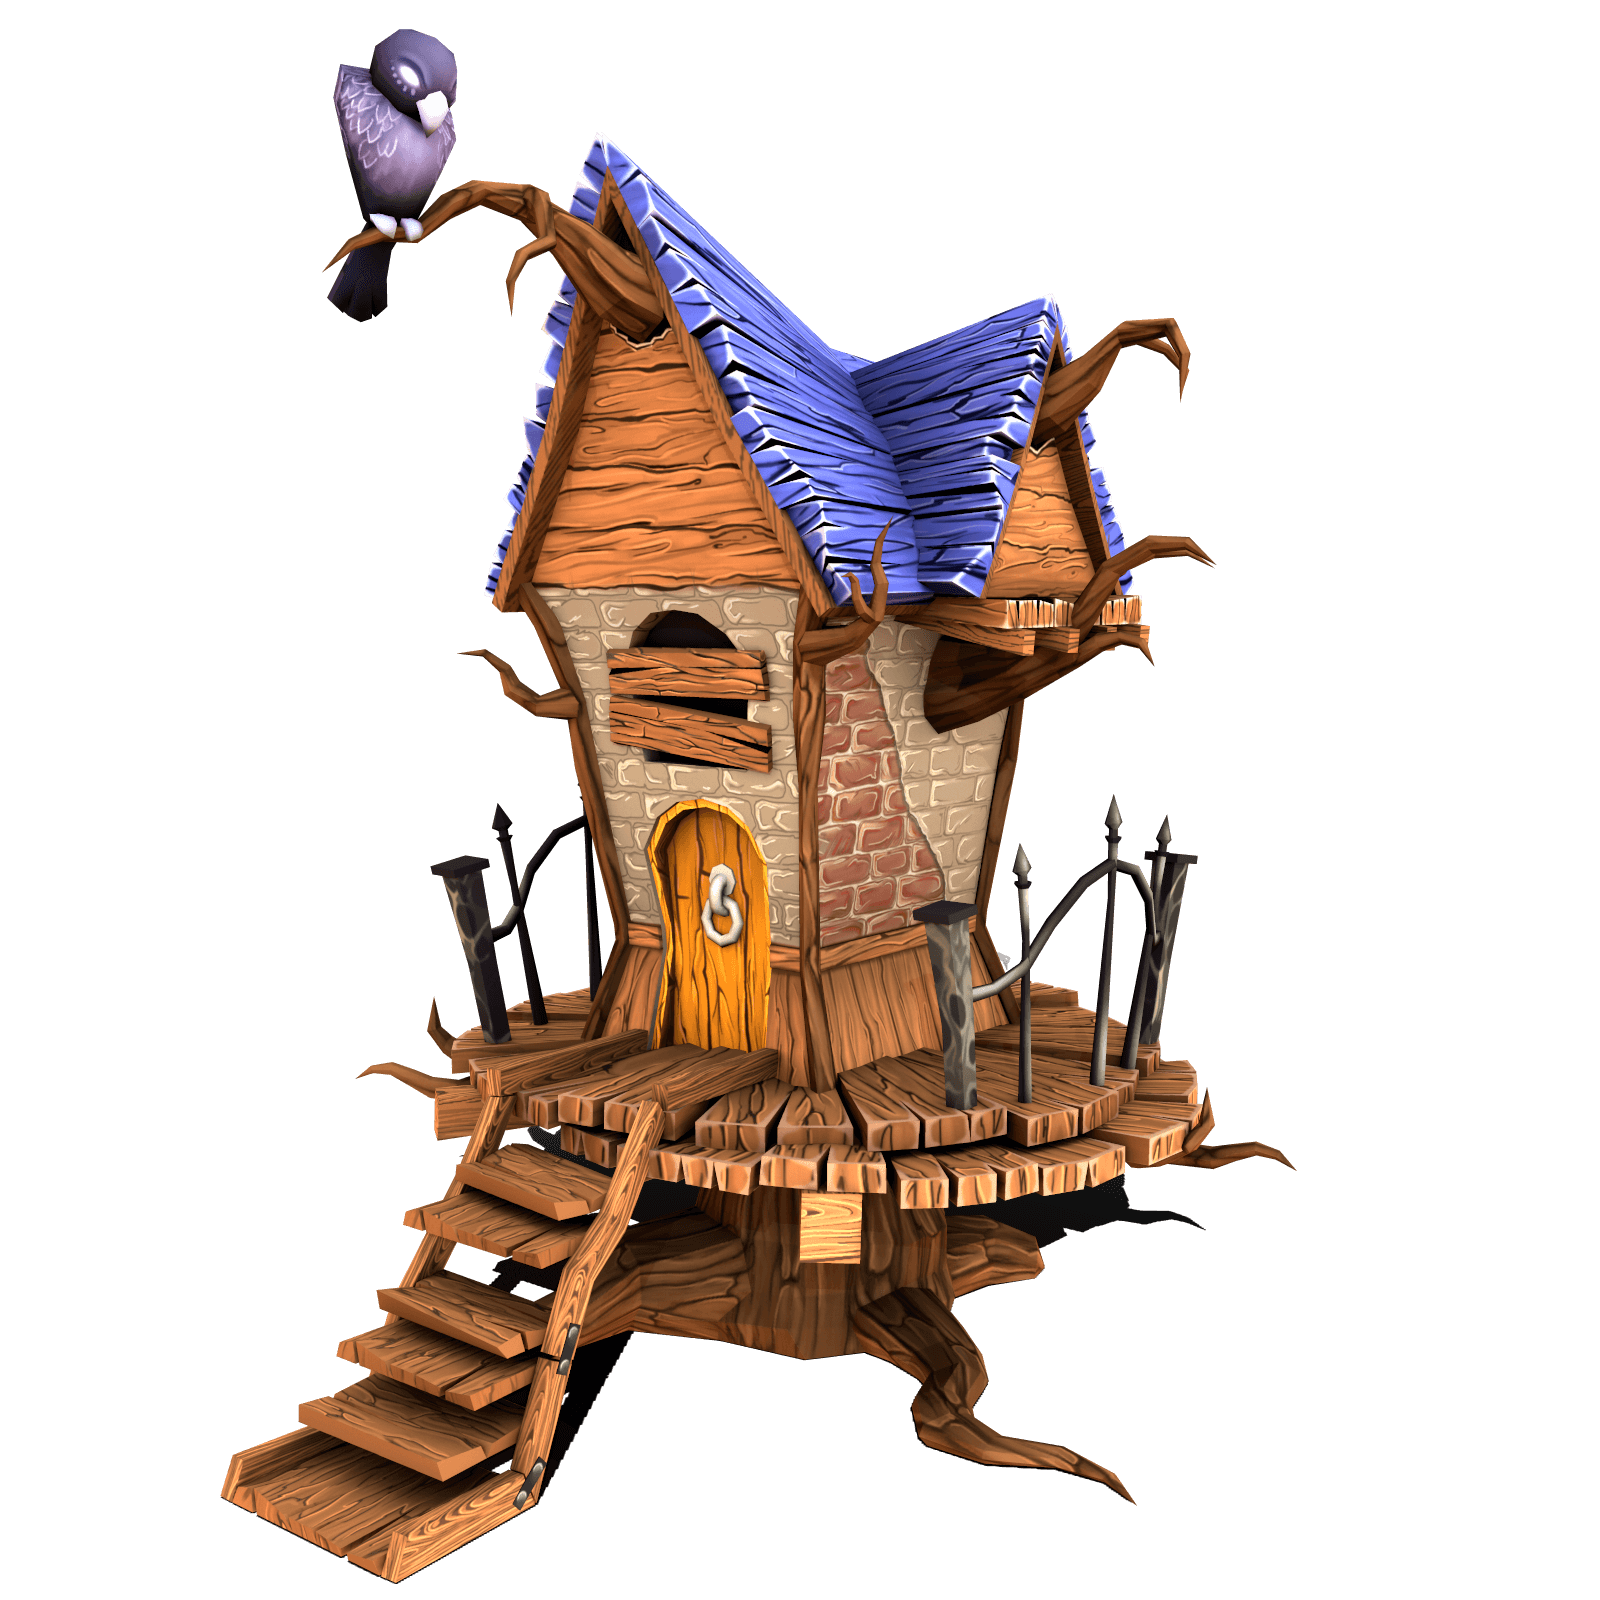 Stylized 3D model of House with wood and bird